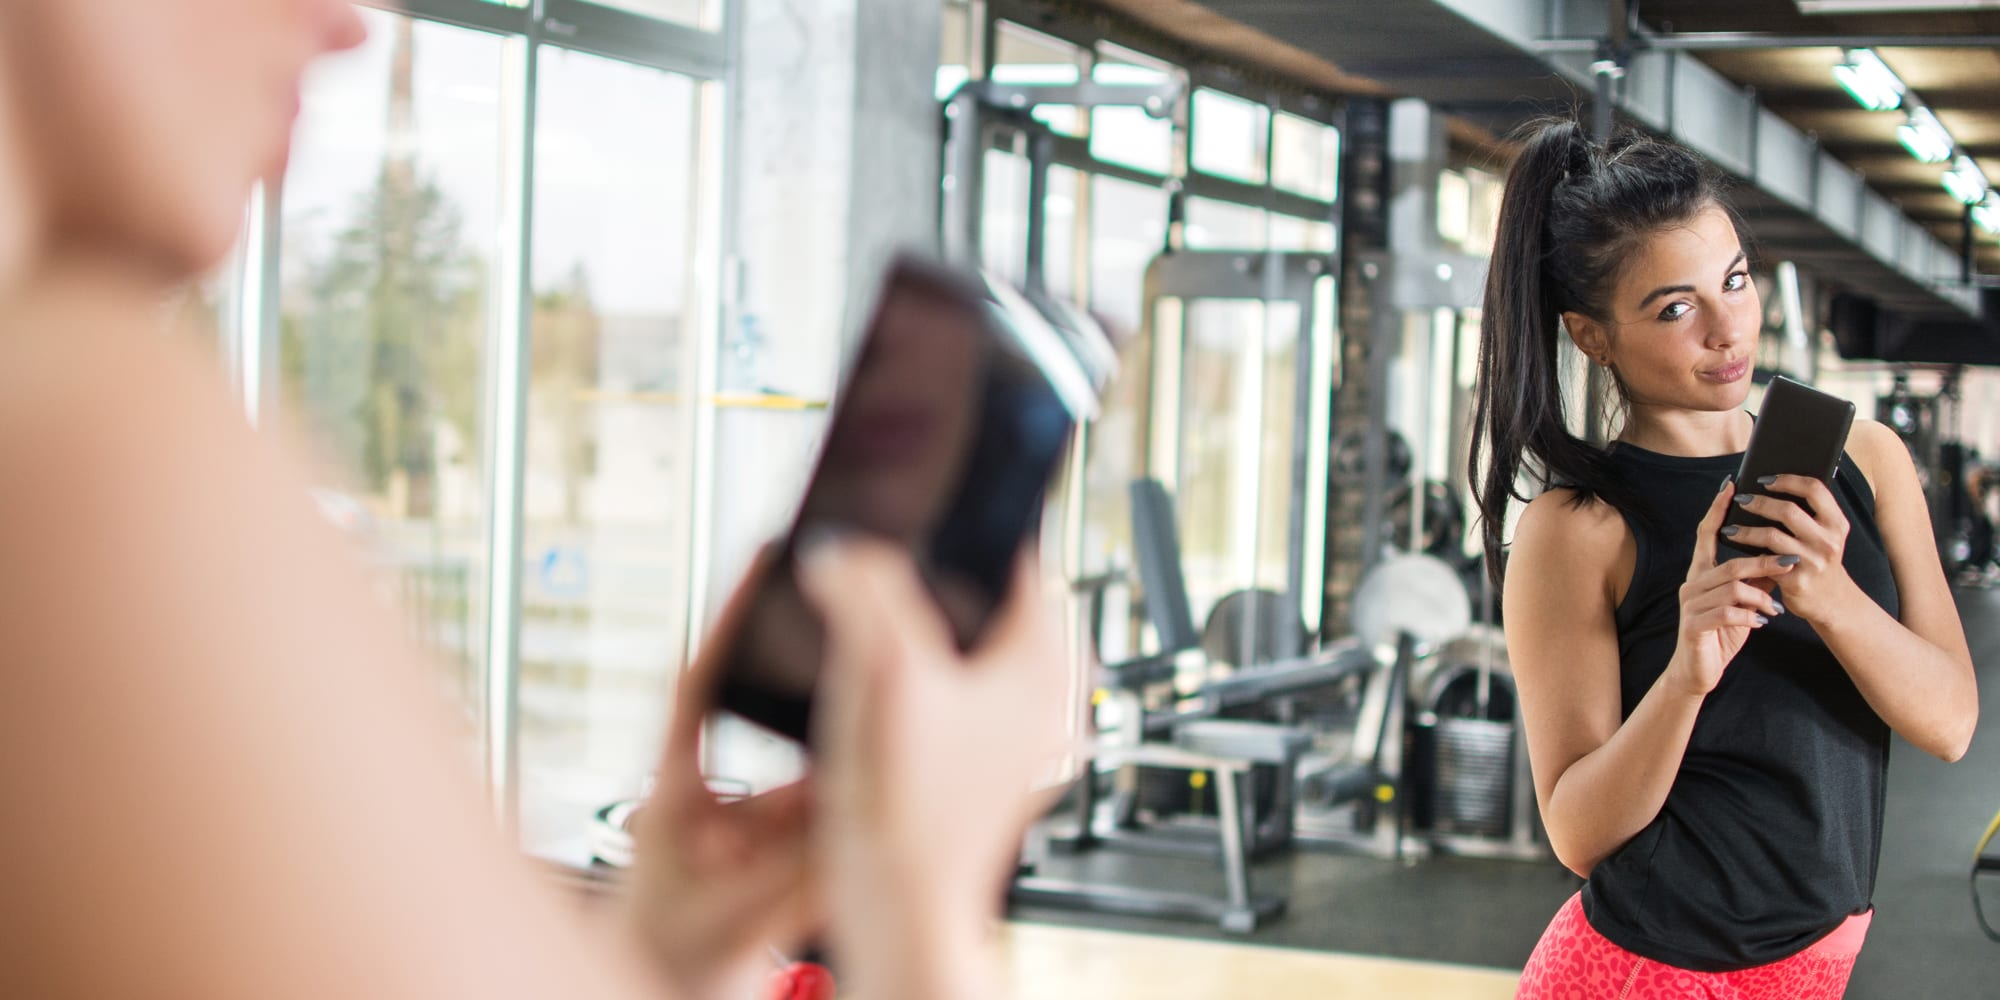 4 Reasons You Shouldn't Feel Bad About Taking Workout Selfies